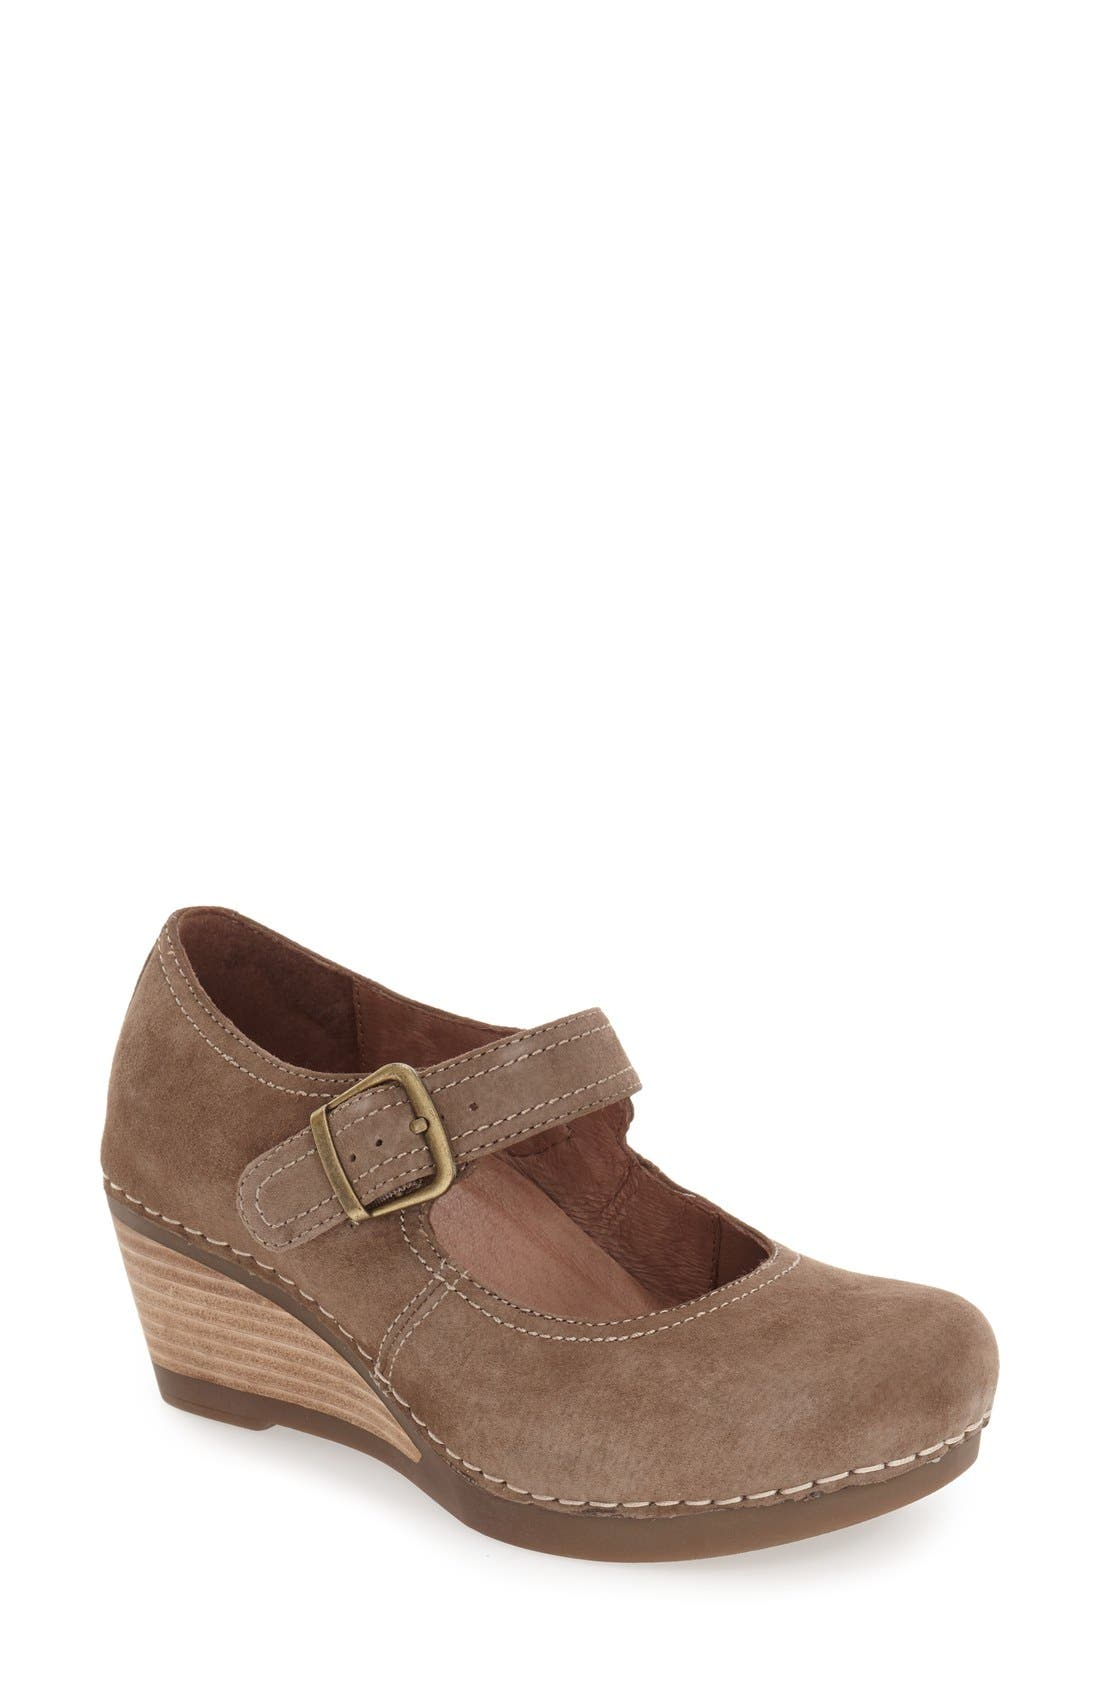 DANSKO Sandra Mary Jane Wedge